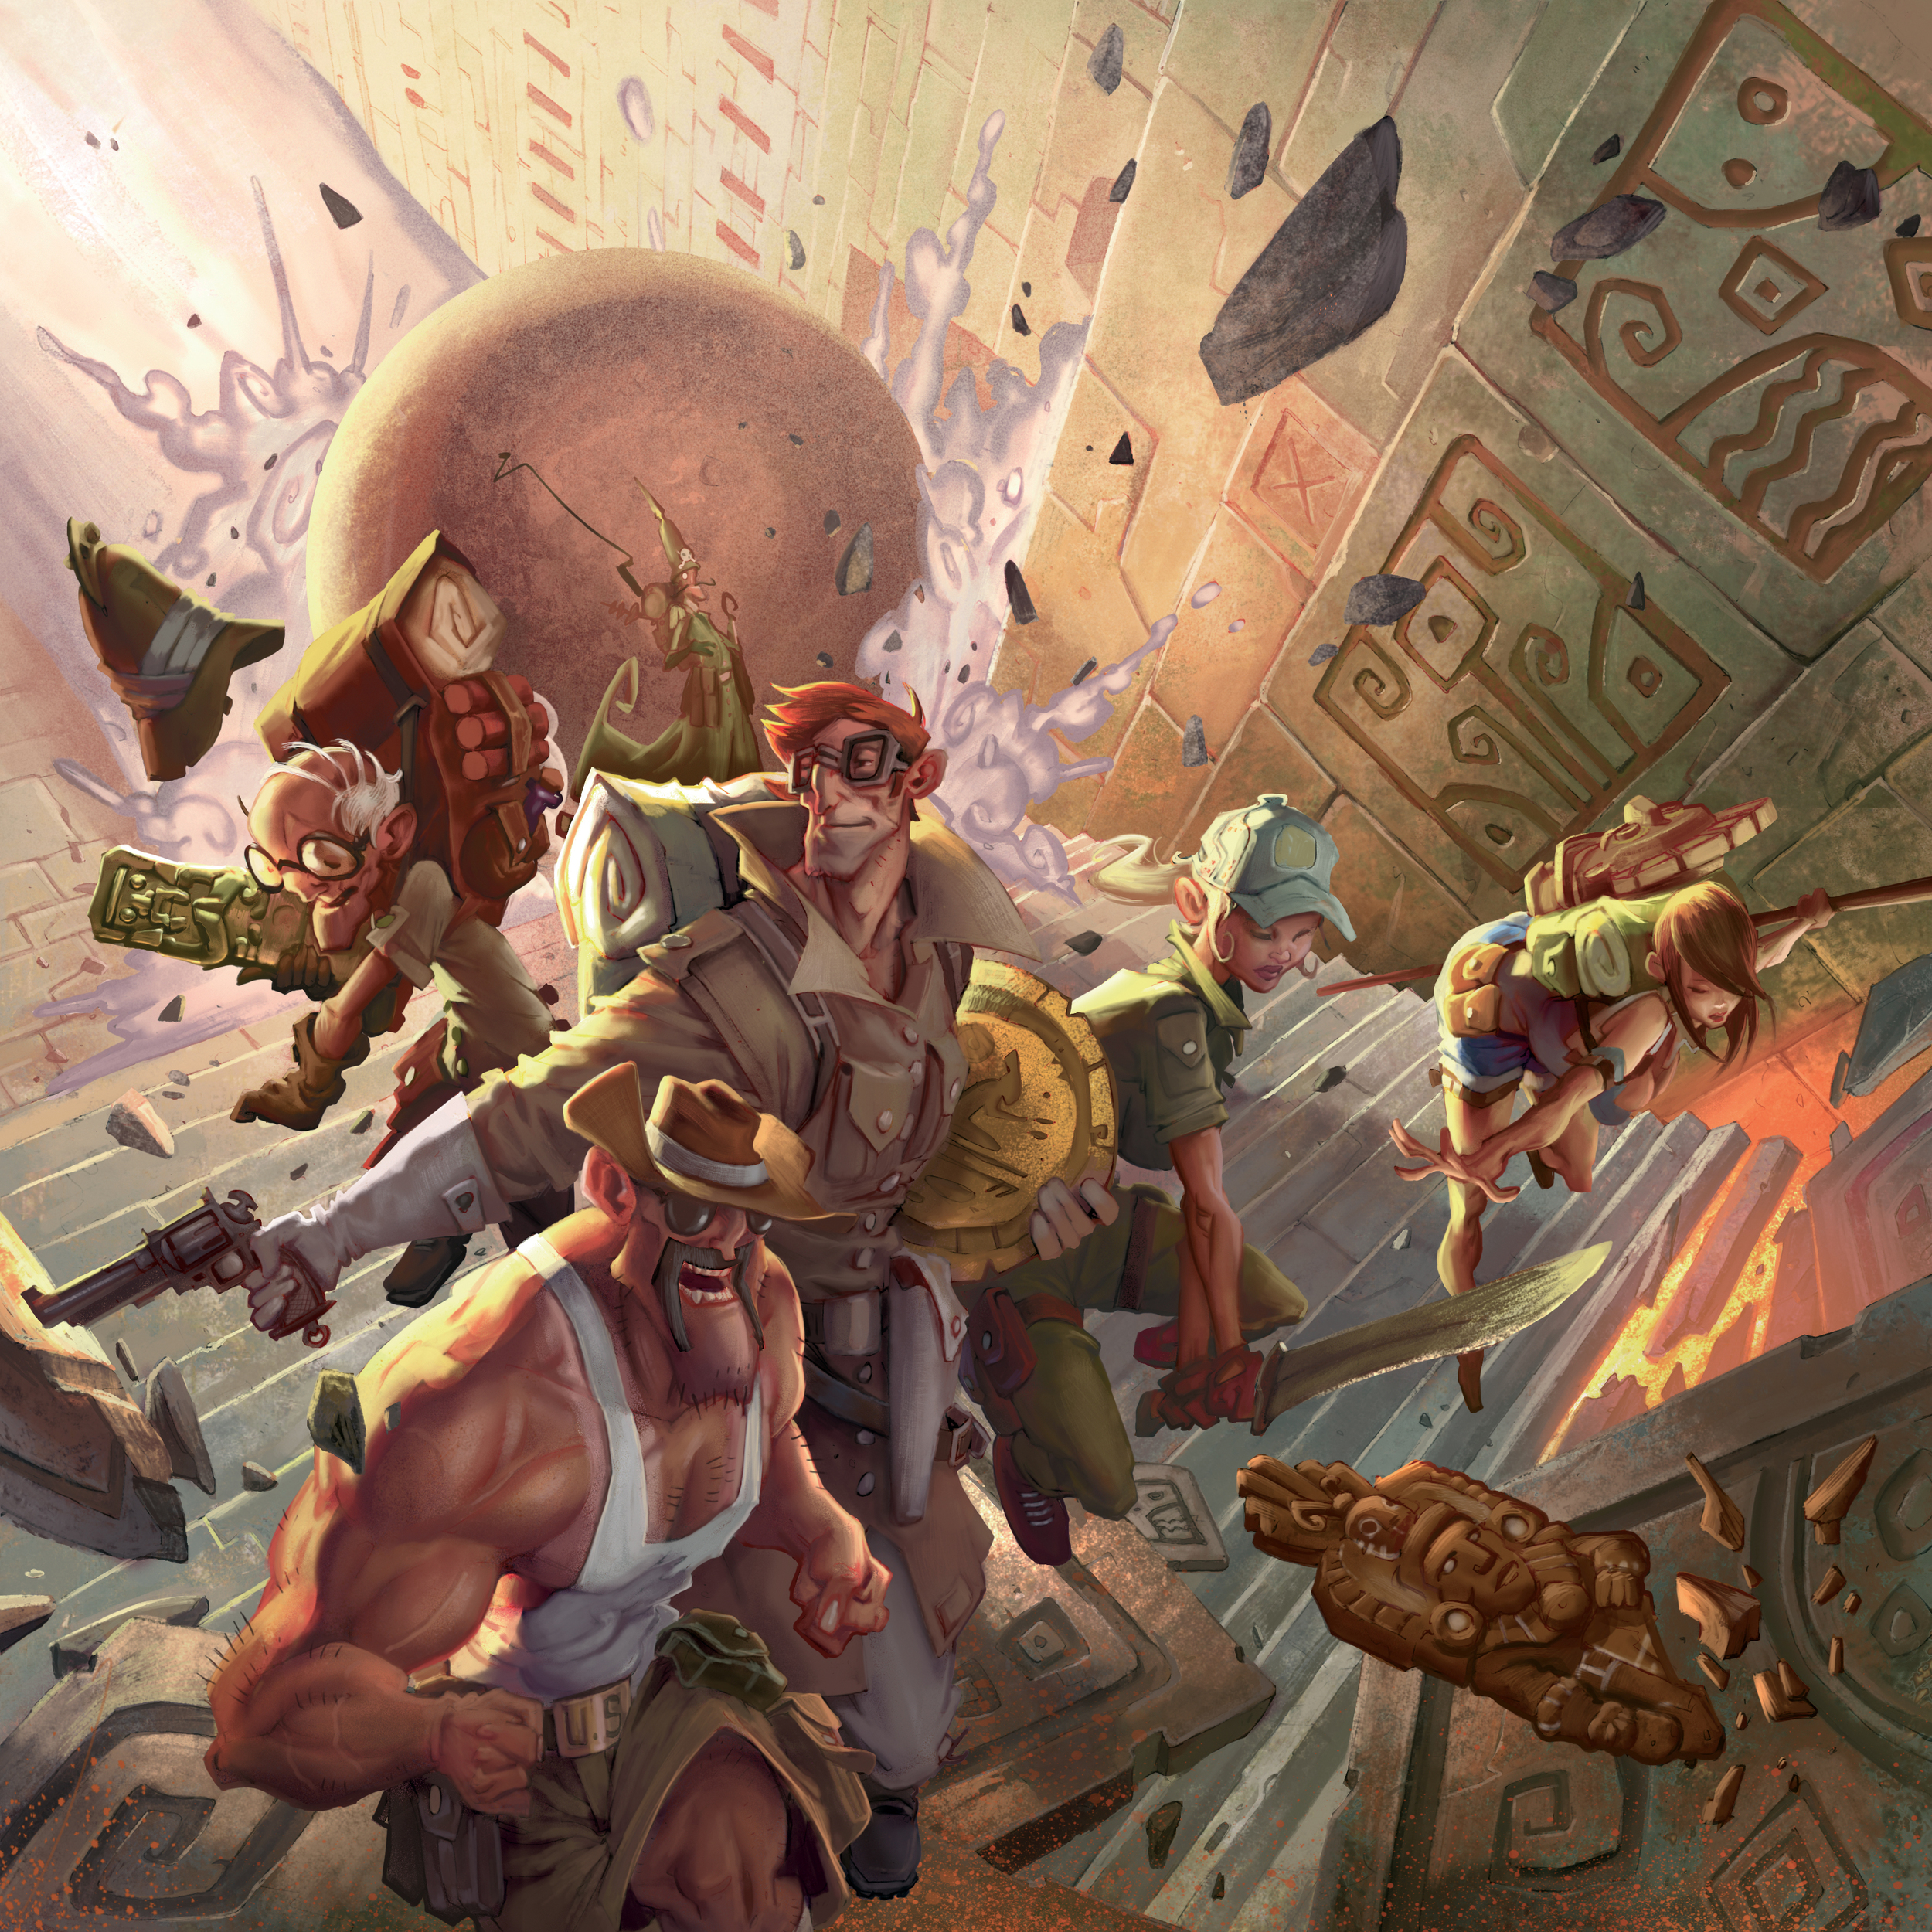 Dust Games |The Adventurers - The Temple of Chac | Edouard Guiton | Miguel Coimbra